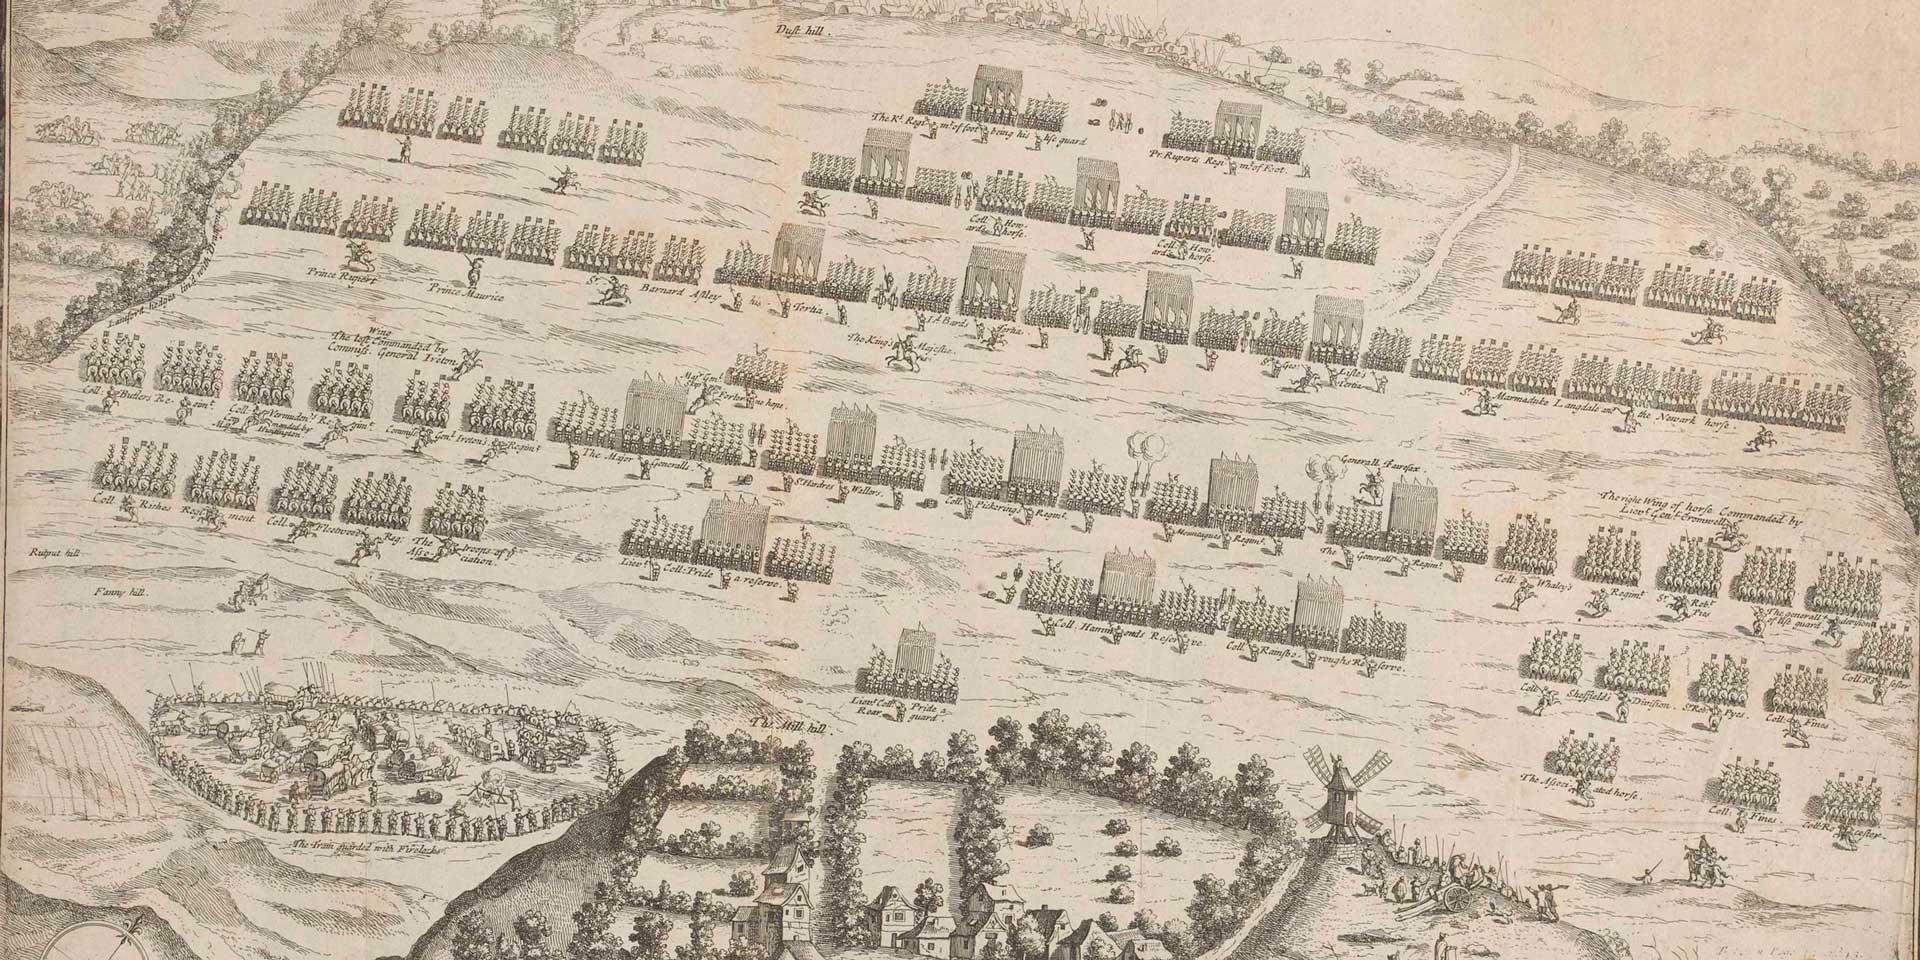 Illustration of the armies before the Battle of Naseby, 1645